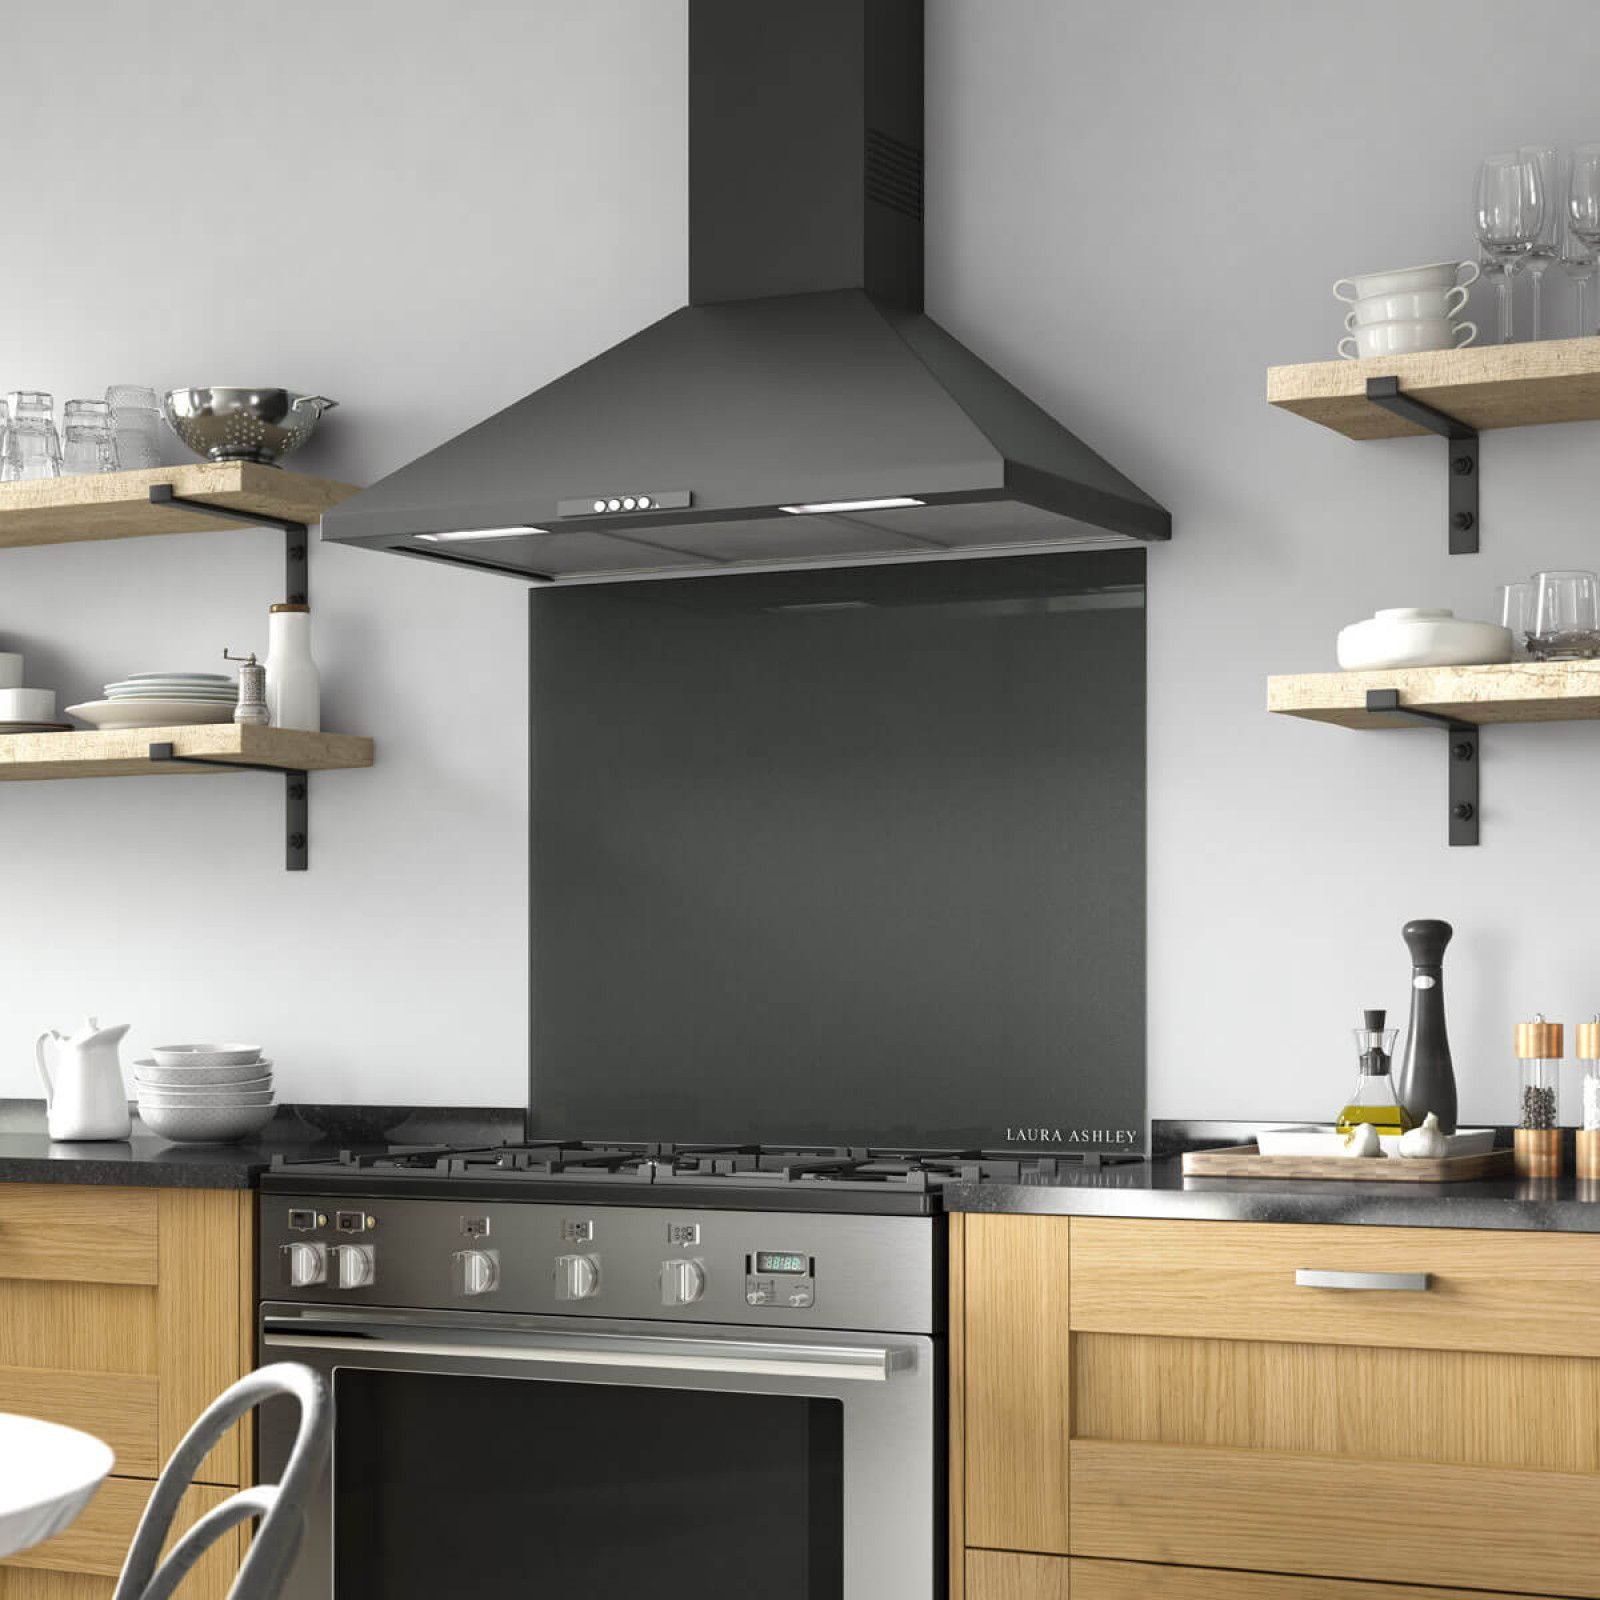 The Bold Charcoal Shade Of This 900x750mm Branded Laura Ashley